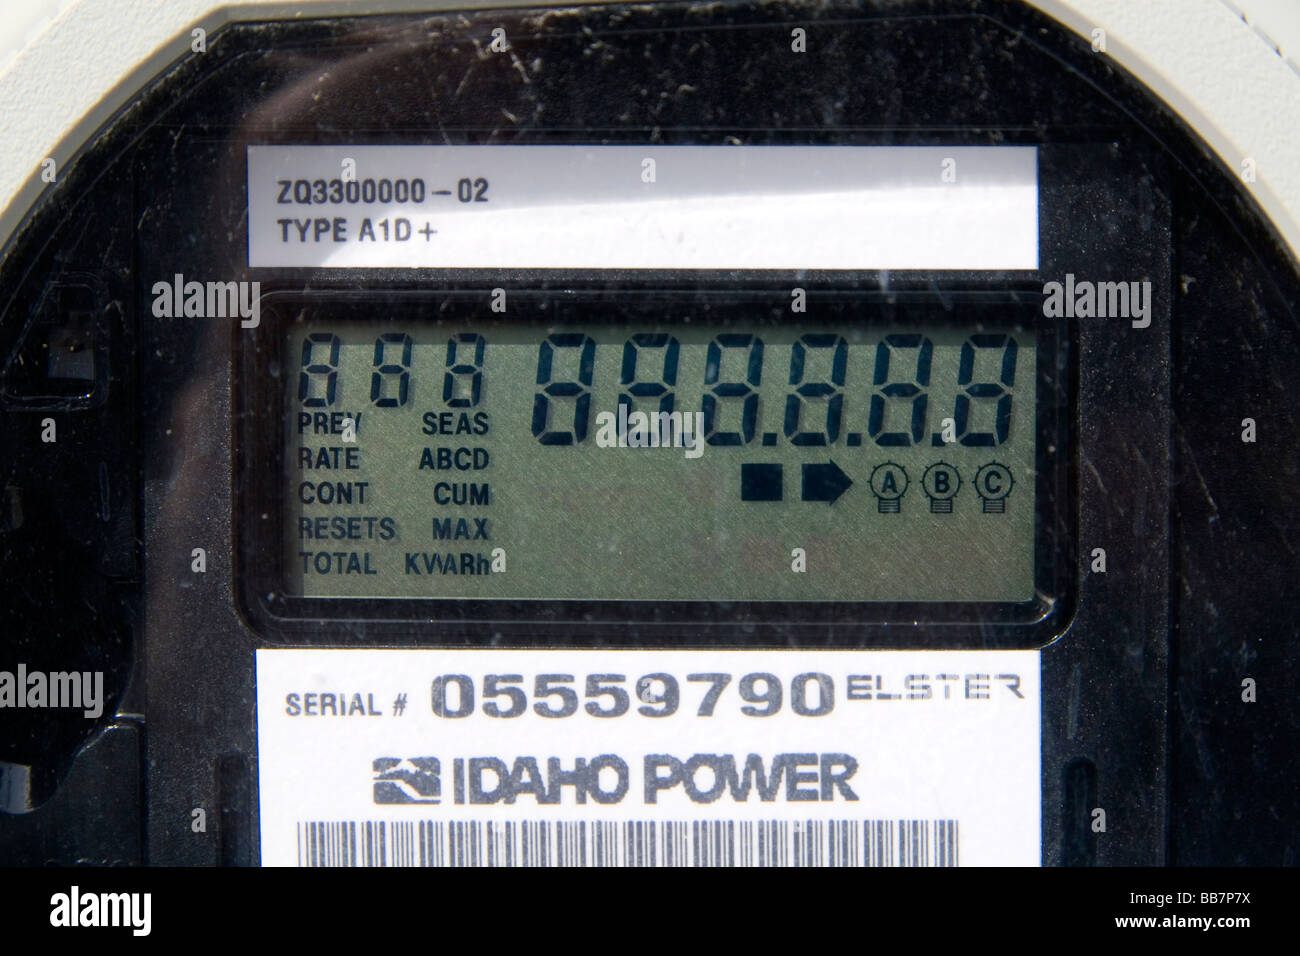 Digital electricity meter displays use and rate of consumption to consumer in Boise Idaho USA - Stock Image